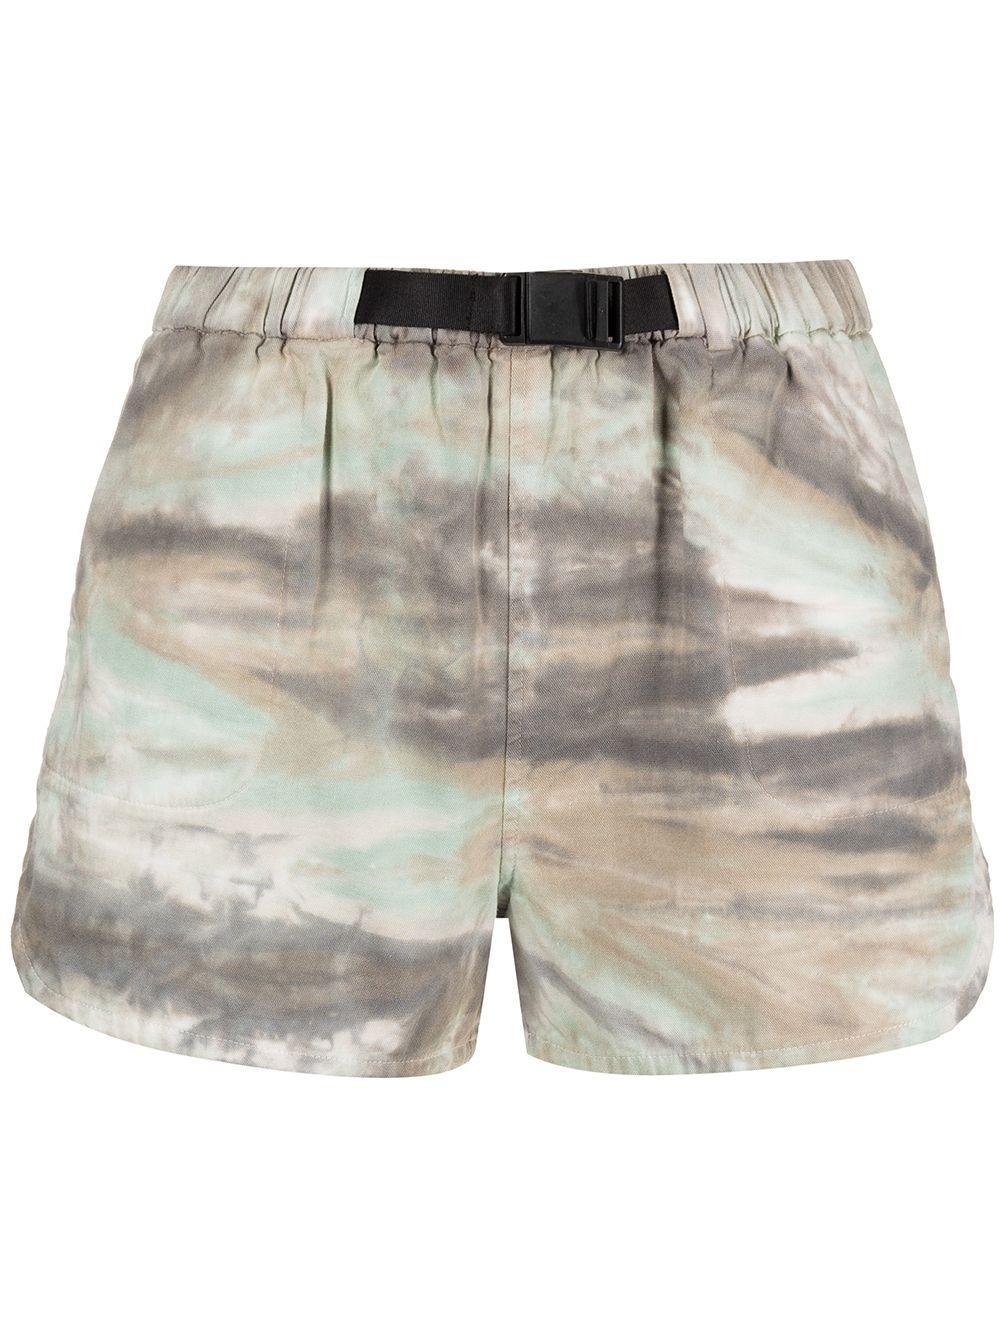 Summit Camo Shorts